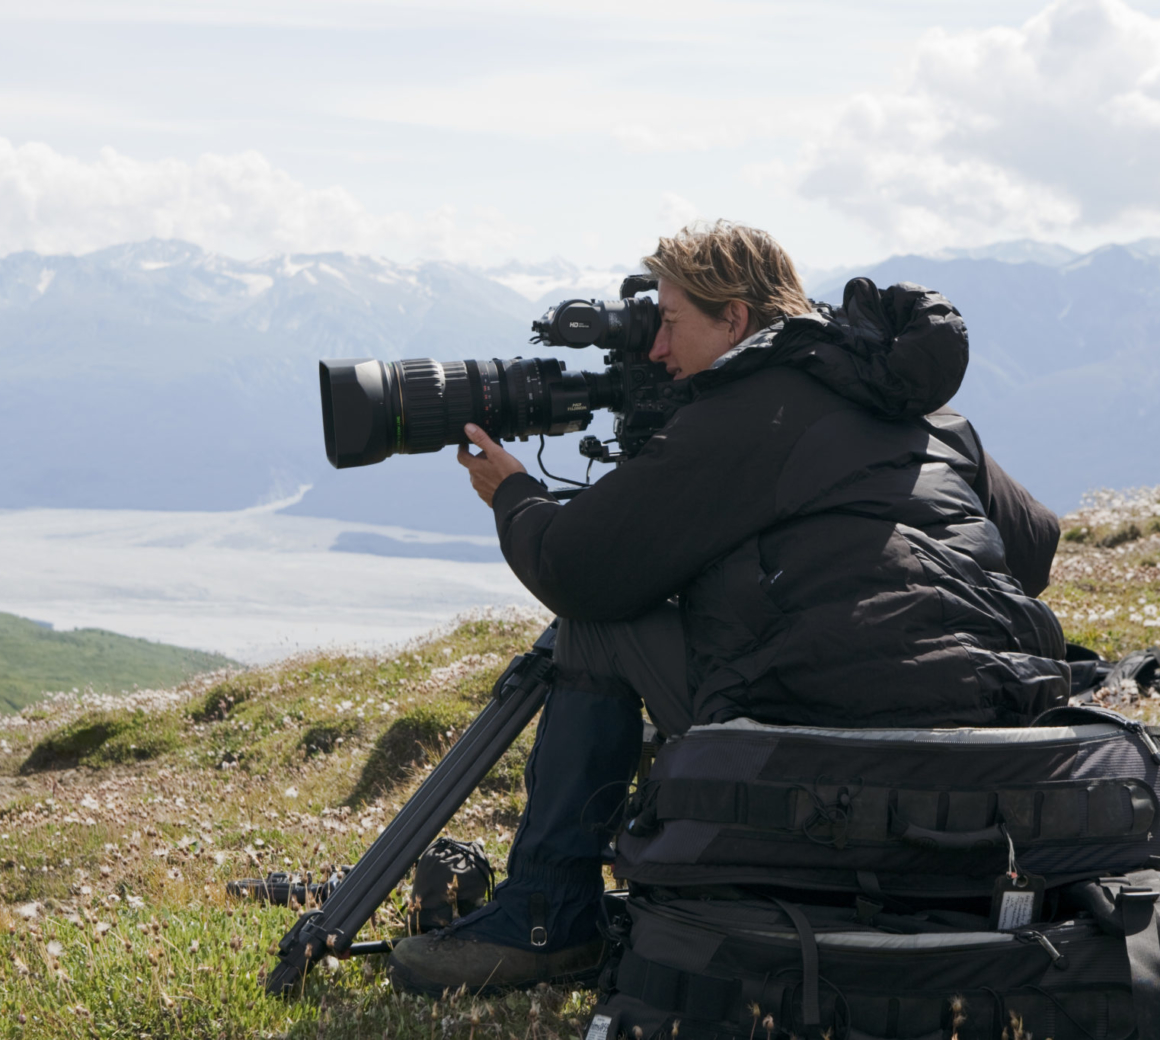 The Female Filmmakers & Guide of BBC America's Dynasties